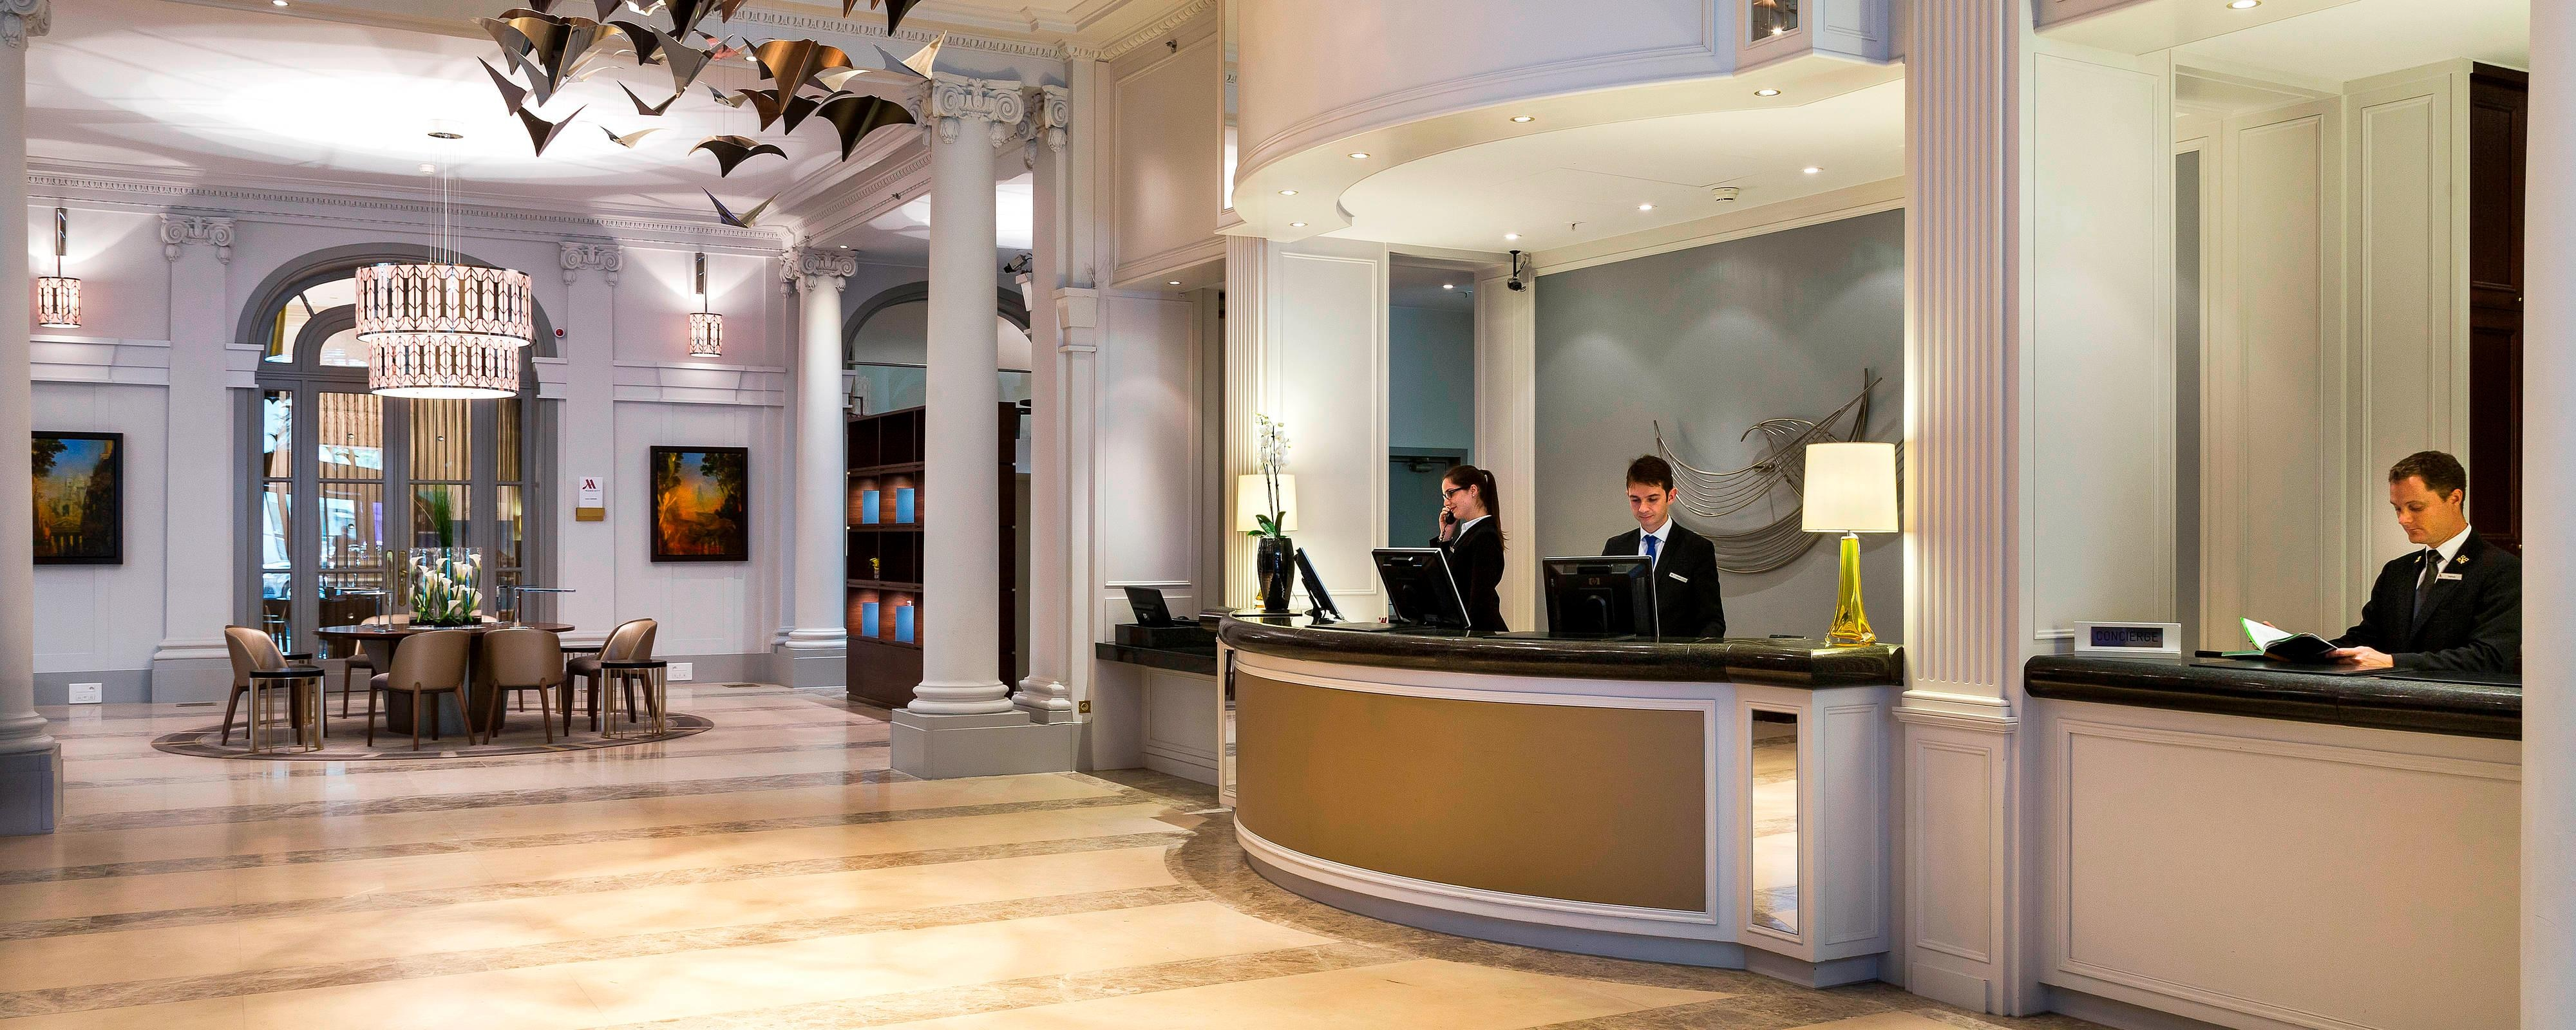 Paris Opera District front desk